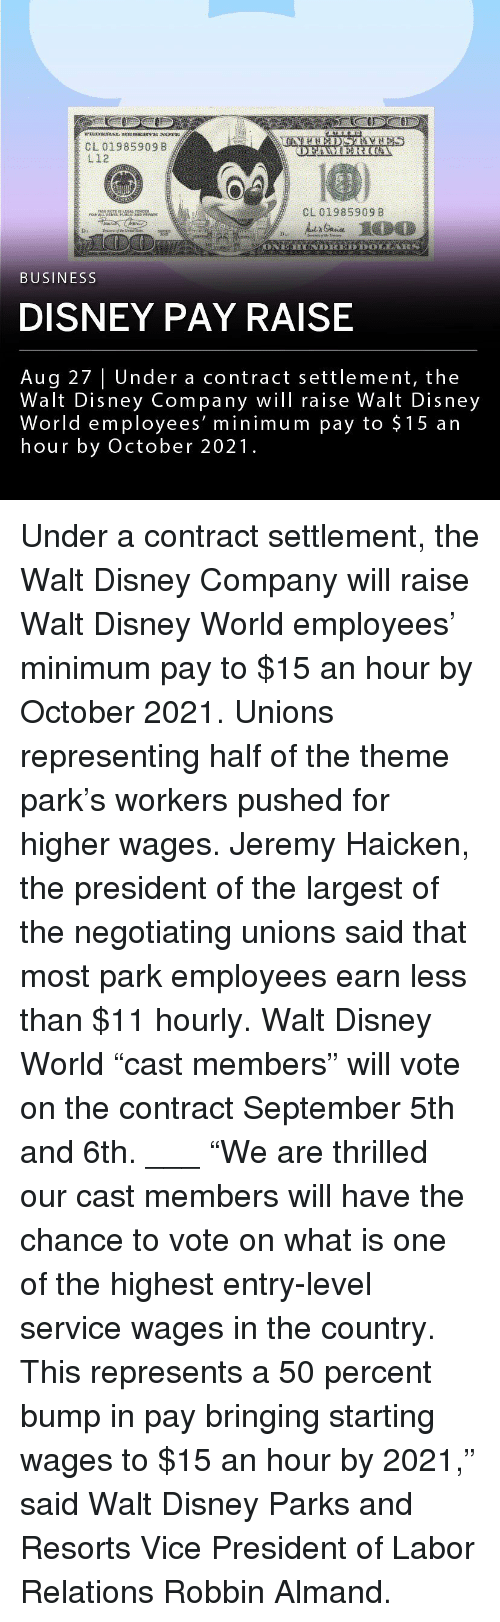 """Disney, Disney World, and Memes: CL 01985909 B  L12  CL 01985909 8  BUSINESS  DISNEY PAY RAISE  Aug 27   Under a contract settlement, the  Walt Disney Company wil raise Walt Disney  World employees' minimum pay to $15 an  hour by October 2021. Under a contract settlement, the Walt Disney Company will raise Walt Disney World employees' minimum pay to $15 an hour by October 2021. Unions representing half of the theme park's workers pushed for higher wages. Jeremy Haicken, the president of the largest of the negotiating unions said that most park employees earn less than $11 hourly. Walt Disney World """"cast members"""" will vote on the contract September 5th and 6th. ___ """"We are thrilled our cast members will have the chance to vote on what is one of the highest entry-level service wages in the country. This represents a 50 percent bump in pay bringing starting wages to $15 an hour by 2021,"""" said Walt Disney Parks and Resorts Vice President of Labor Relations Robbin Almand."""